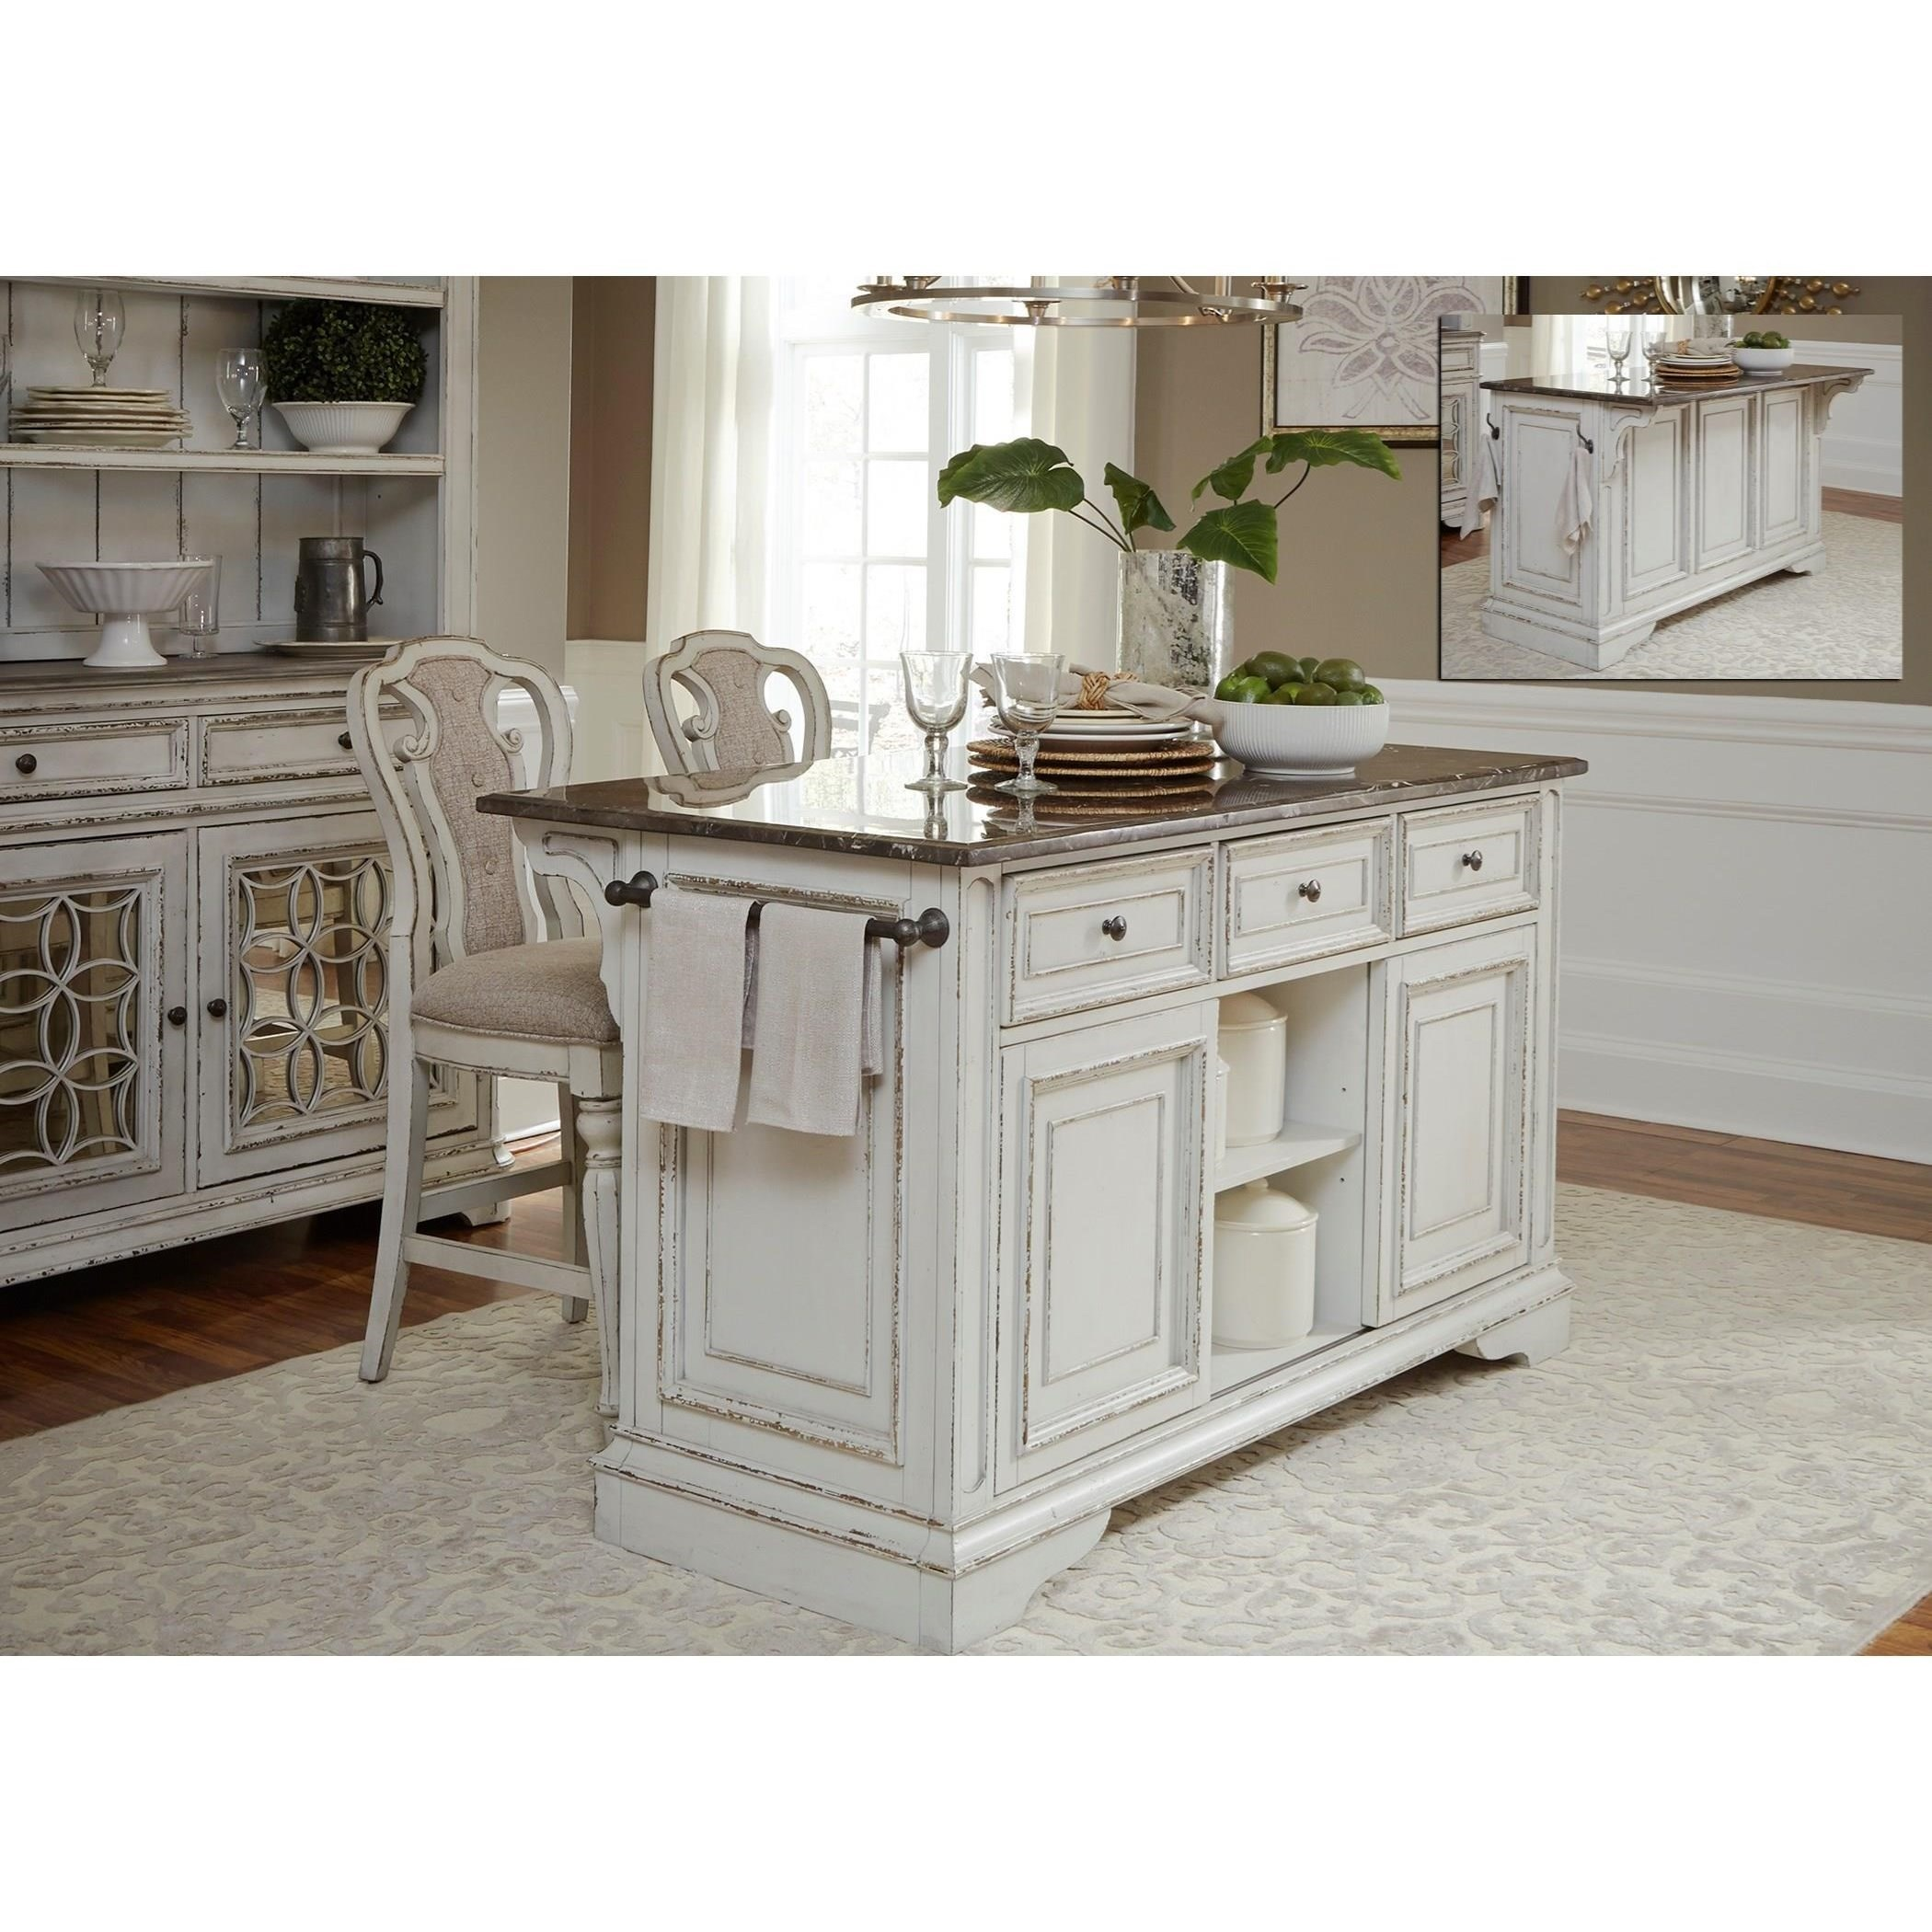 Kitchen Island Furniture: Liberty Furniture Magnolia Manor Dining 244-IT6032G